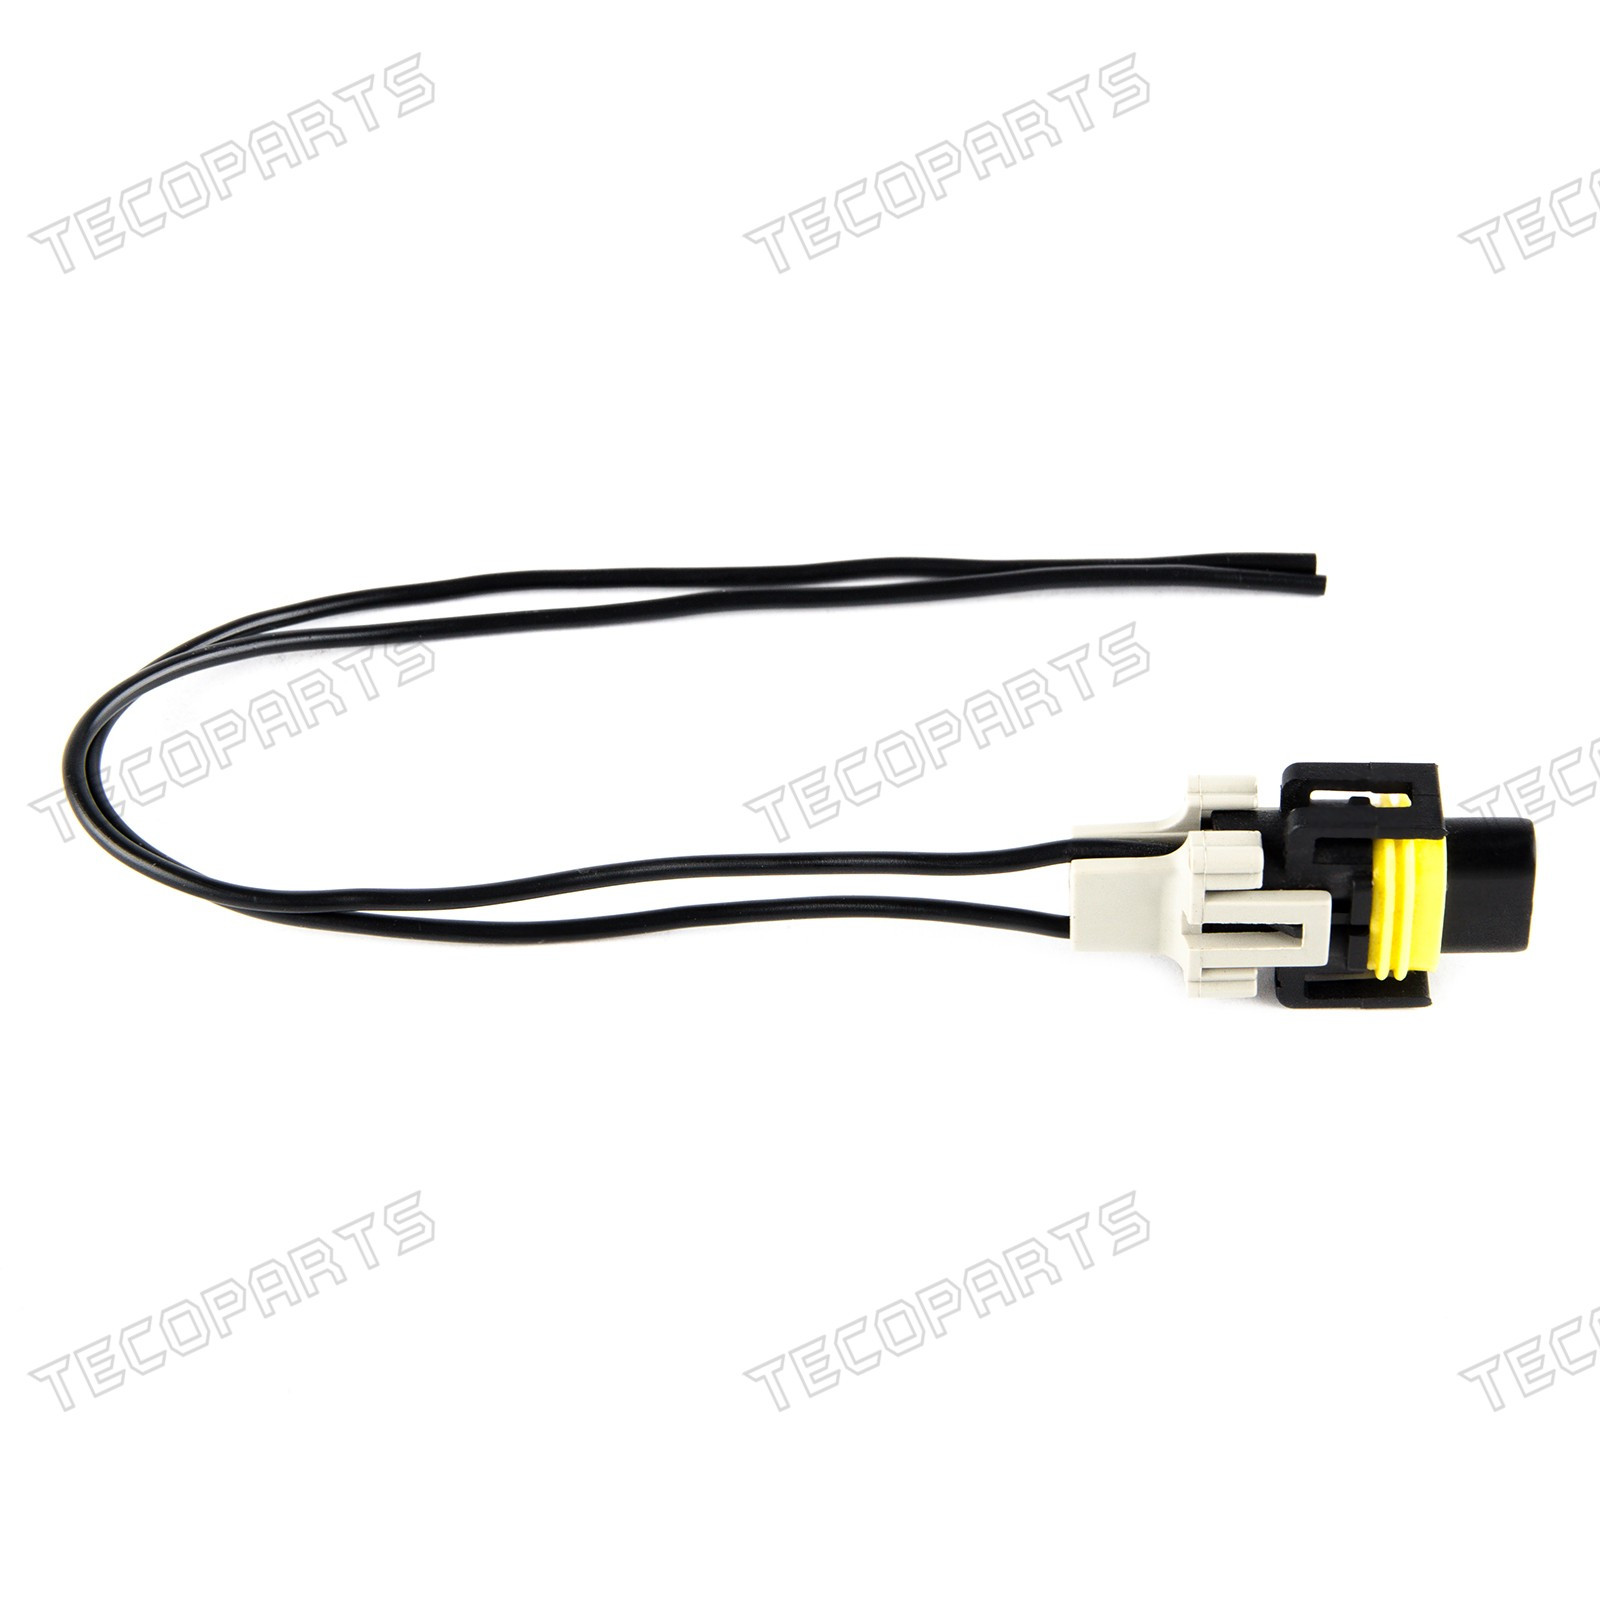 hight resolution of vss vehicle speed sensor connector wiring harness plug for gm tpi tbi 700r4 t5